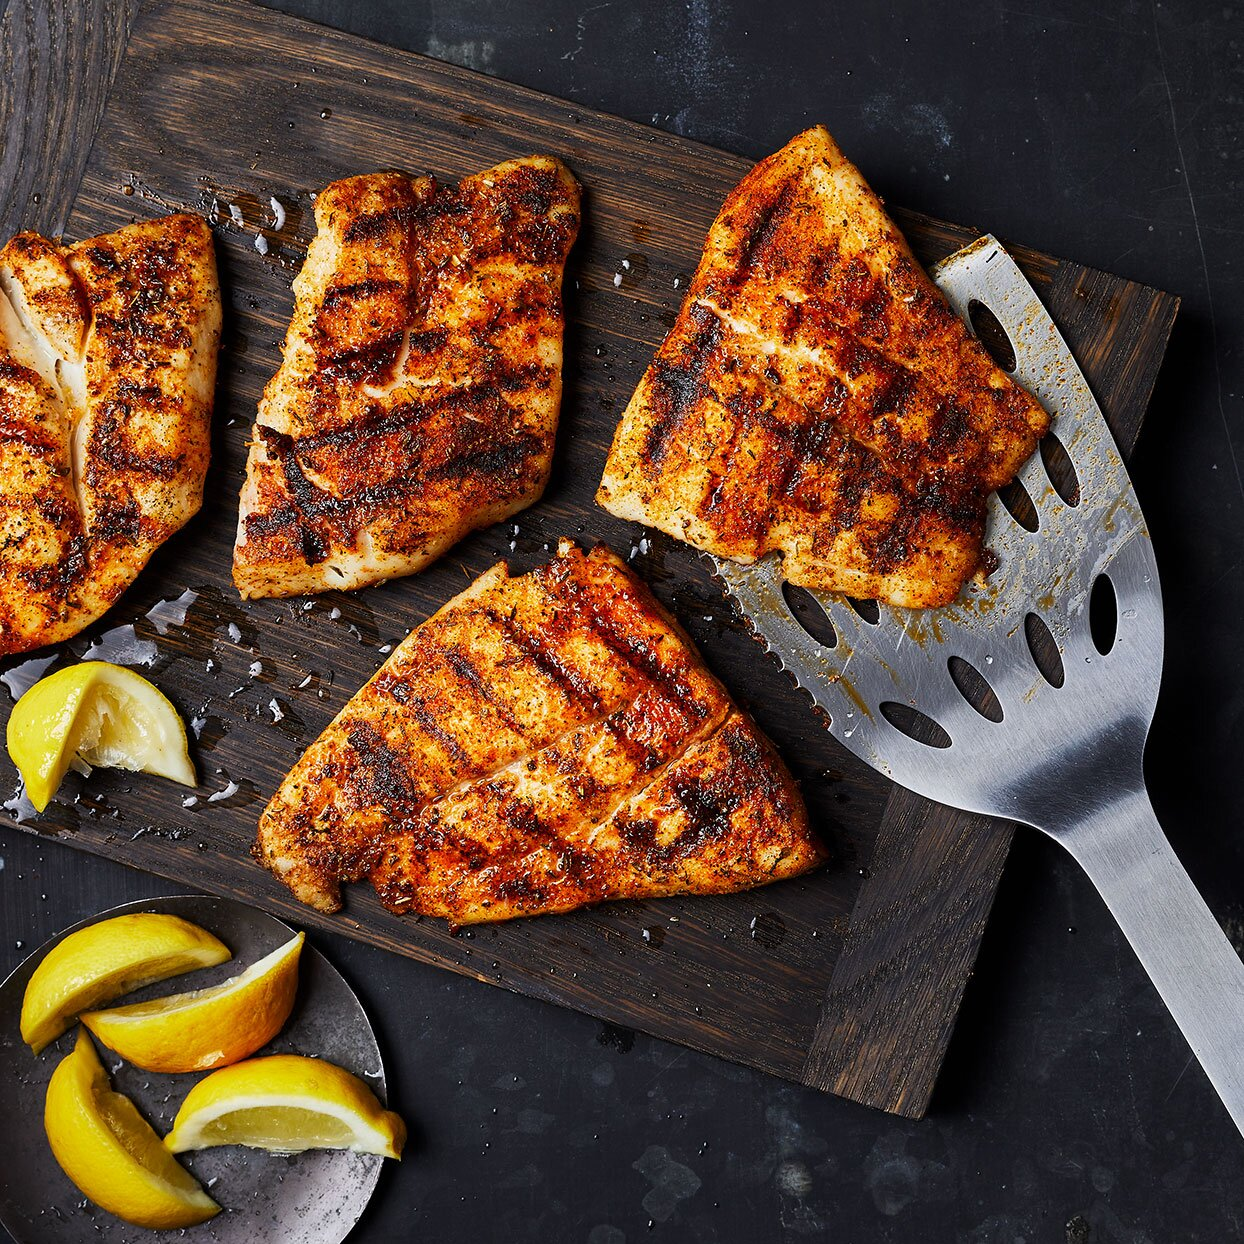 Grilled Red Snapper Recipe Eatingwell,Easy Meatball Recipe No Egg